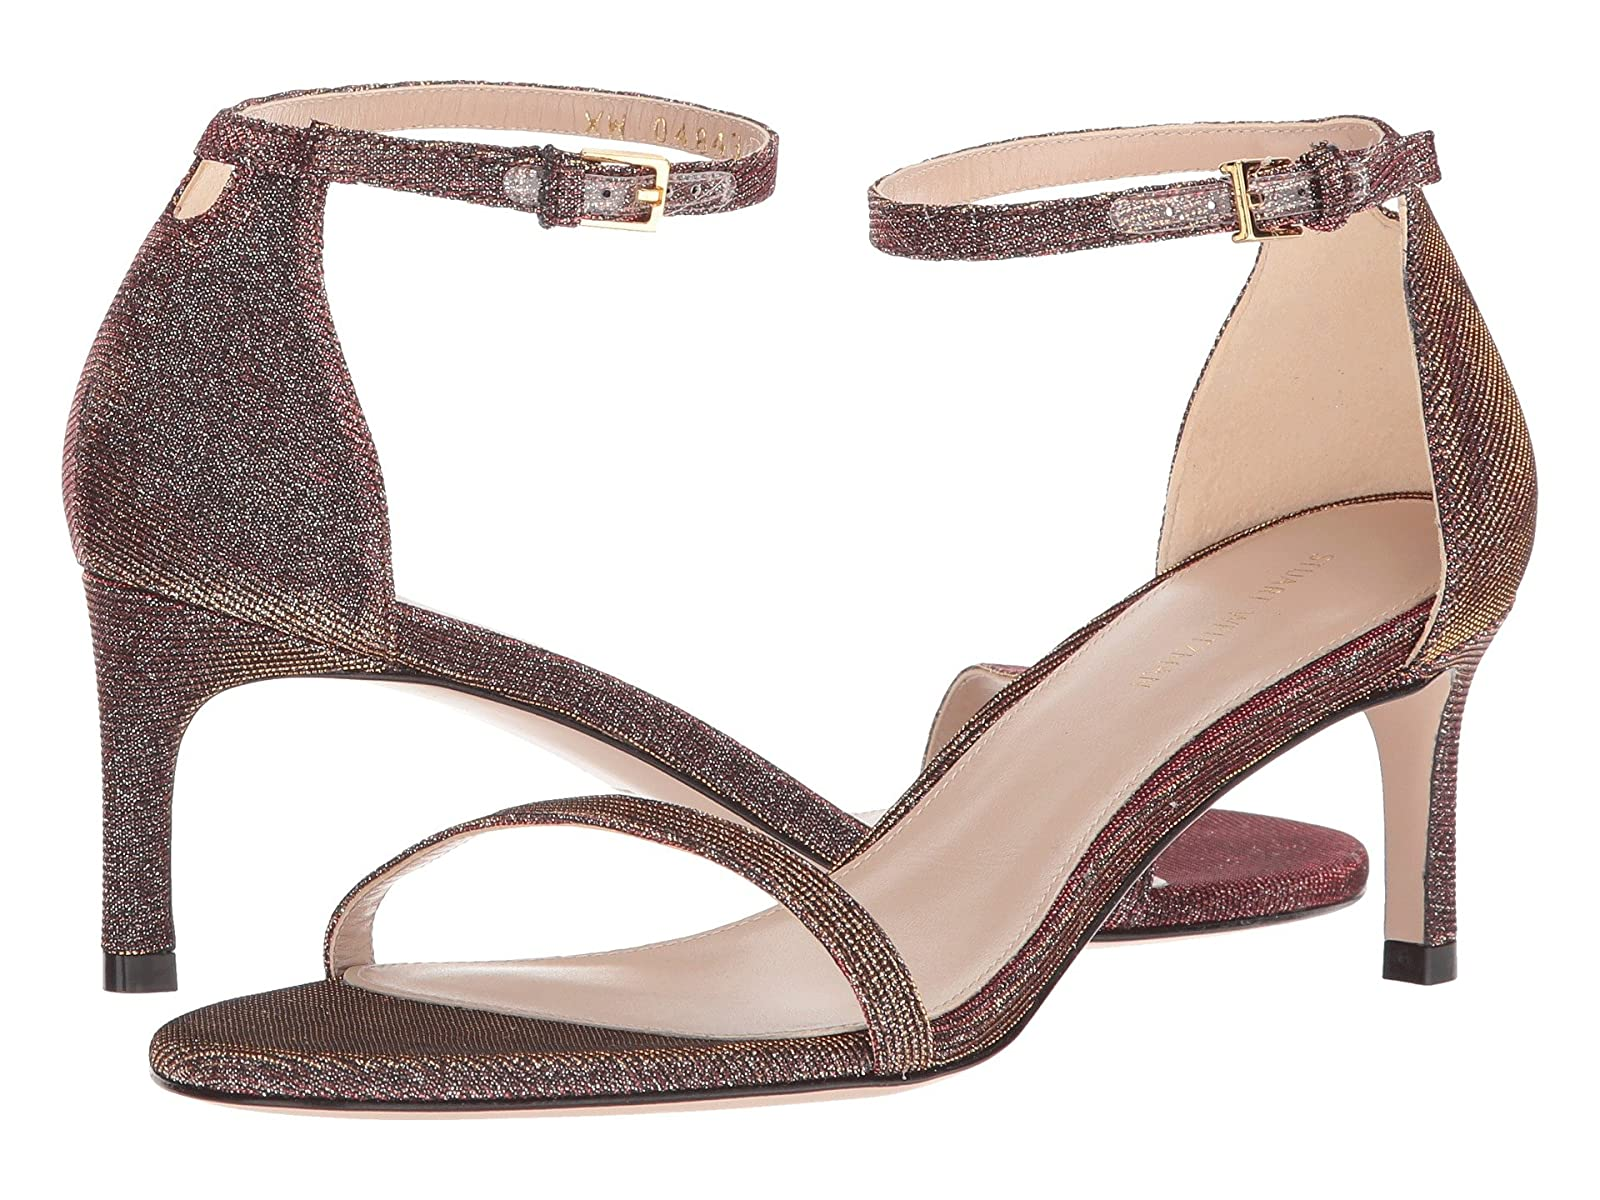 Stuart Weitzman 45nudisttraditionalCheap and distinctive eye-catching shoes